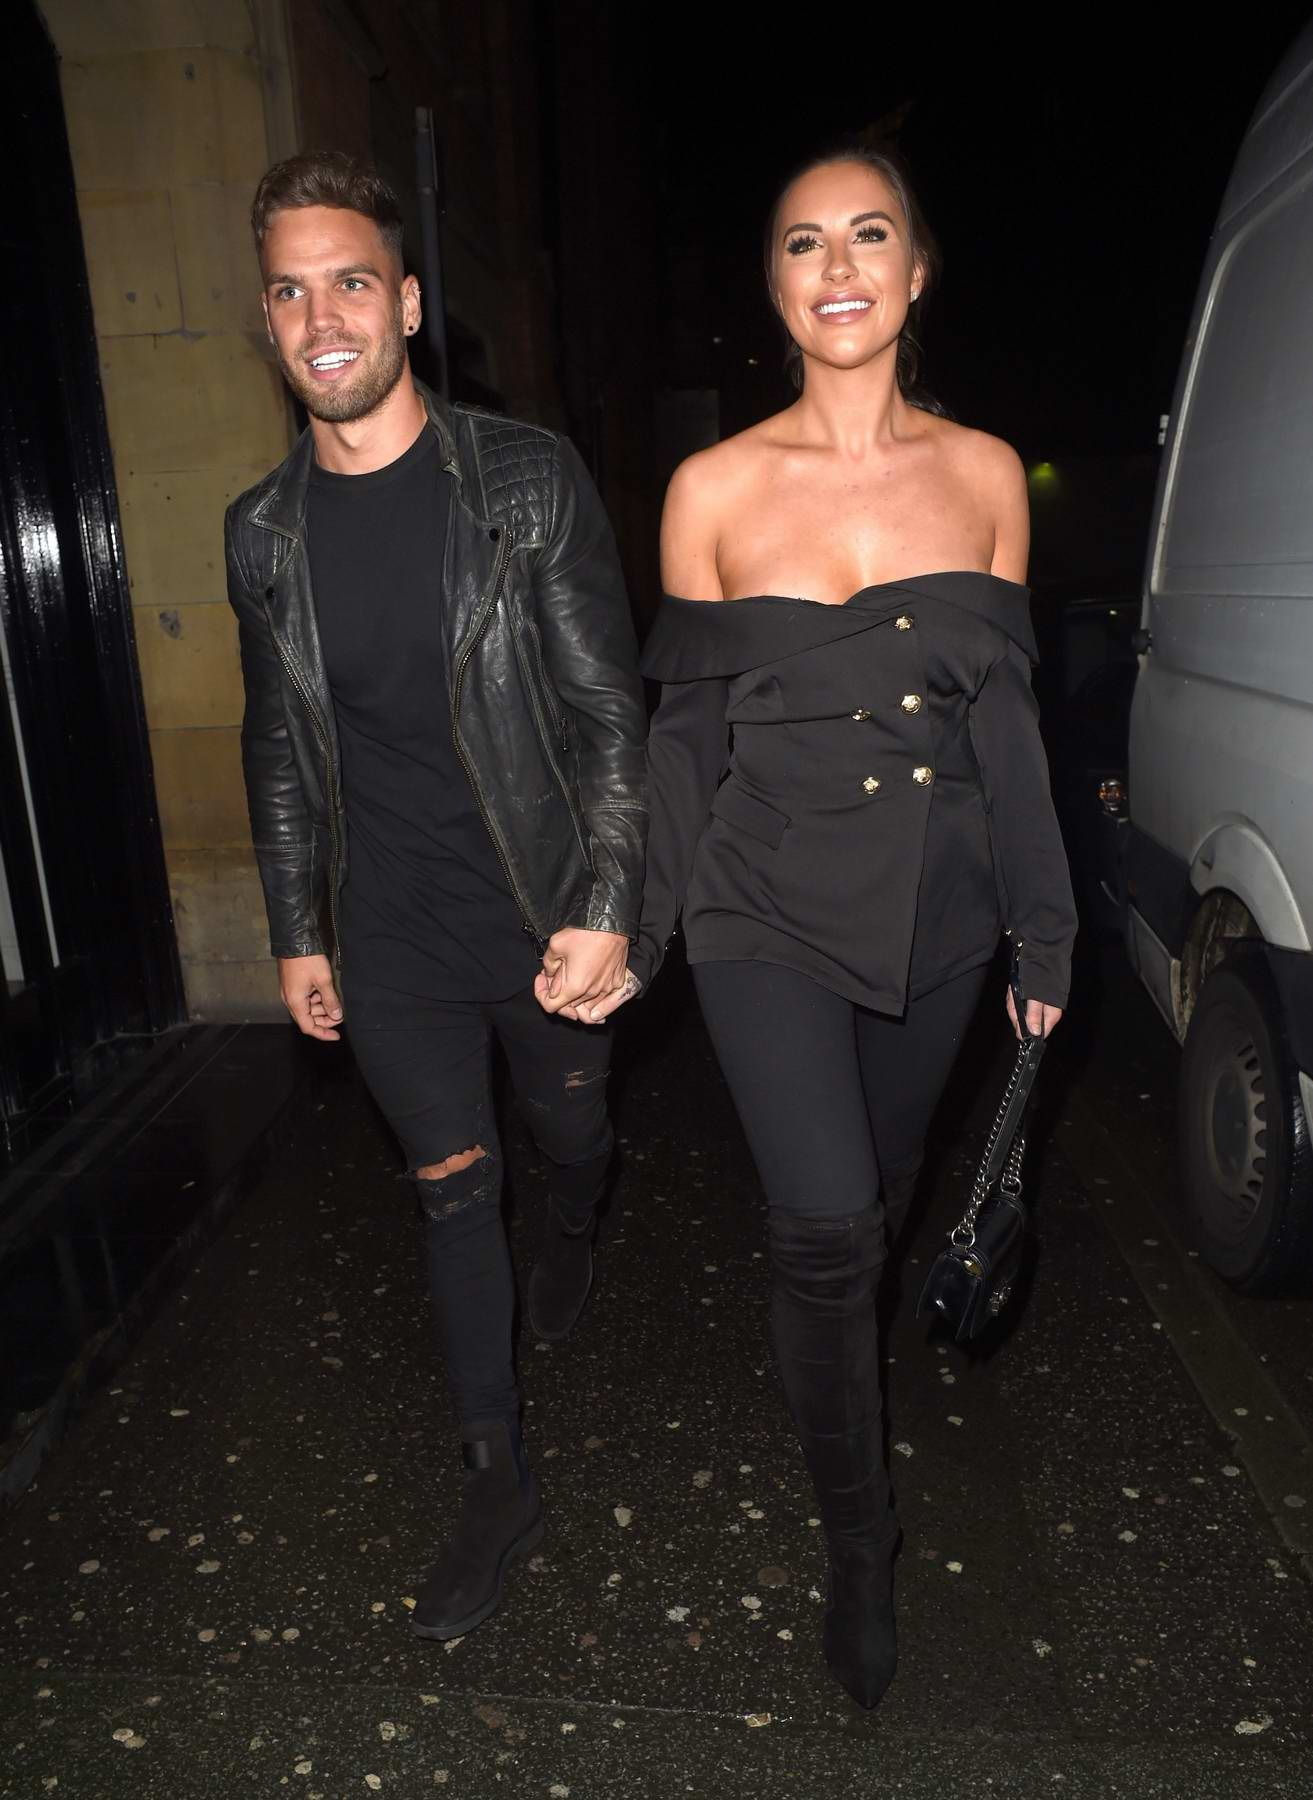 Jessica Shears and Dom Lever arrives at the Smoke House Cellar Bar and Restaurant in Manchester, UK